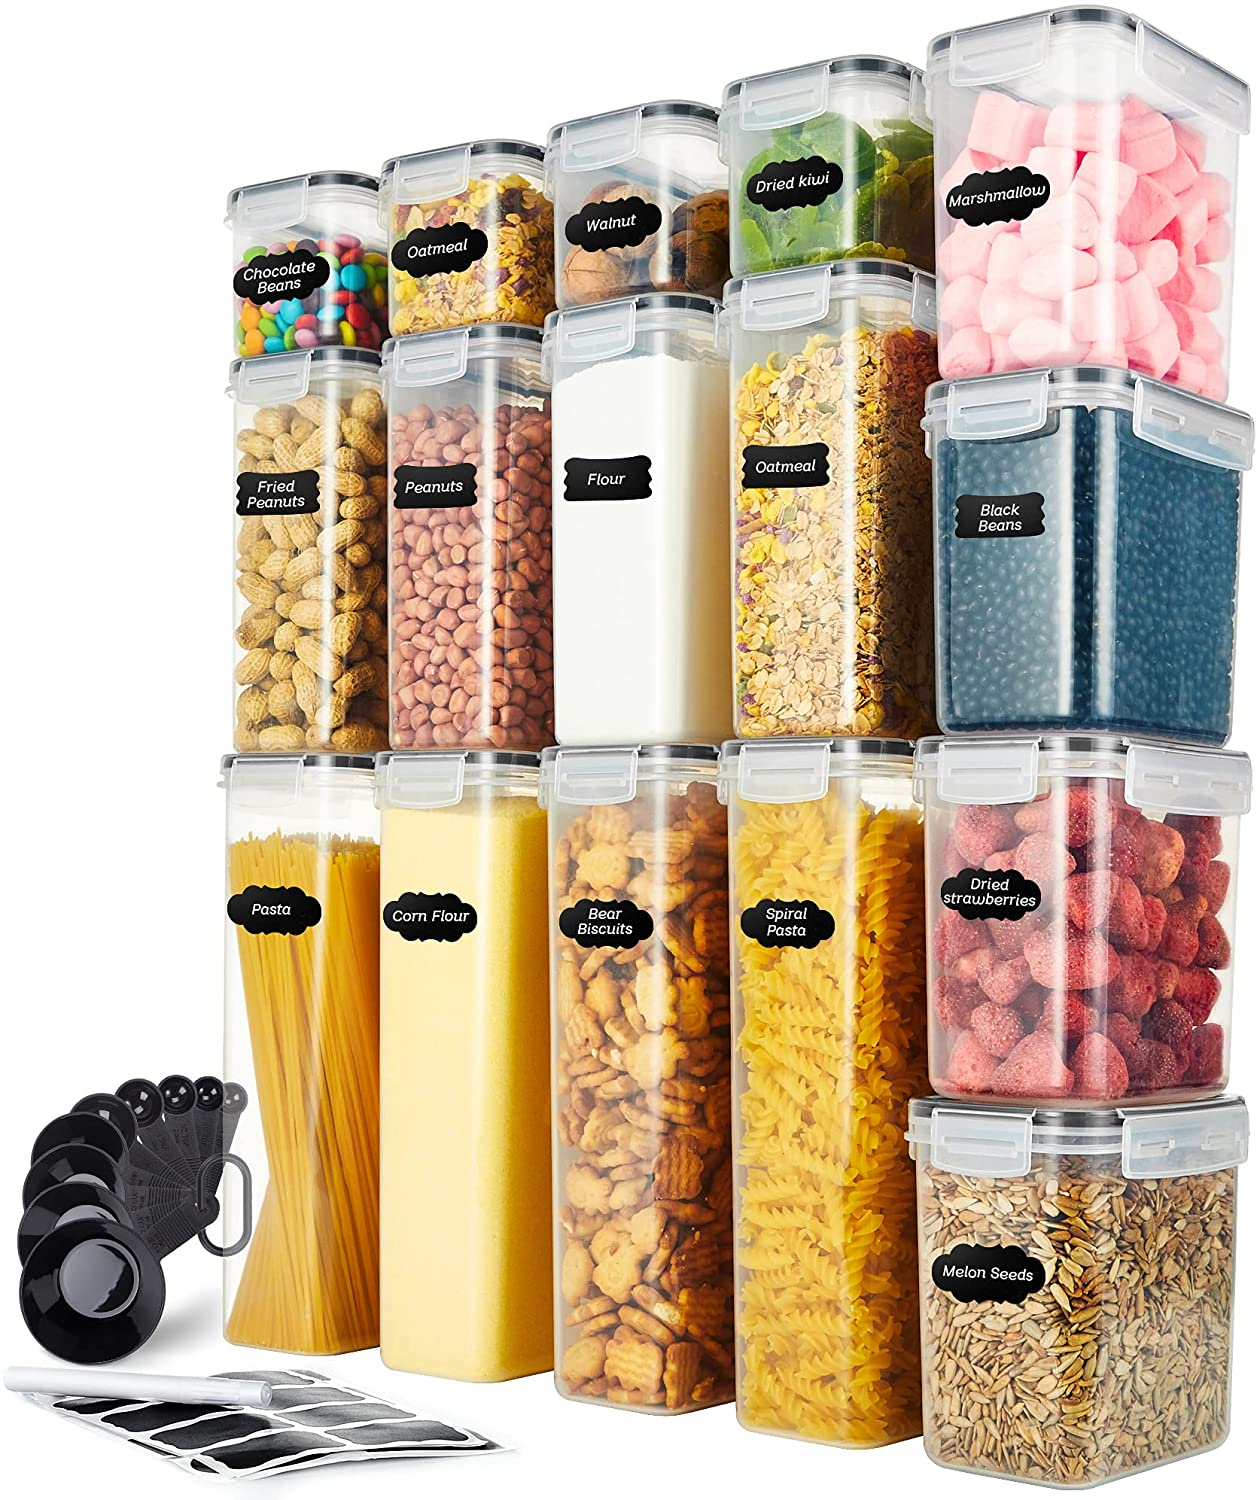 Syntus Food Storage Container Set, 16 Pcs Airtight Plastic Food Canisters with Lids for Kitchen & Pantry Organization (28L), Labels, Marker & Spoon Included